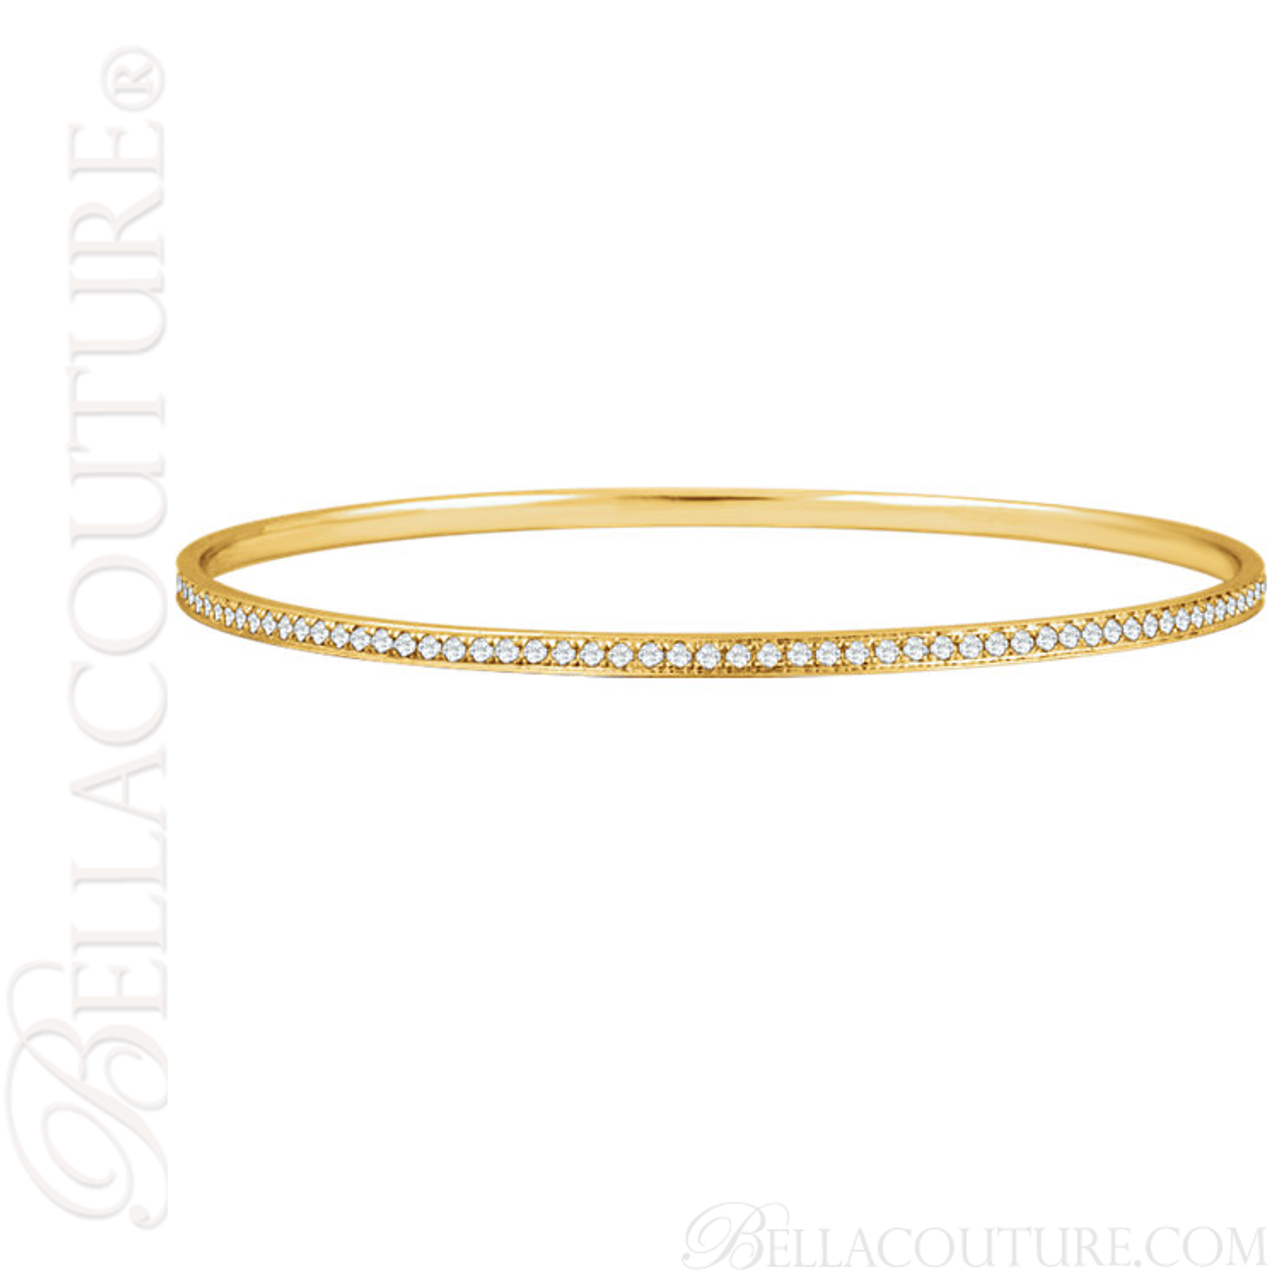 marsha bracelet jewelry bracelets diamond bangle bangles and fashion yellow gold pav pave by